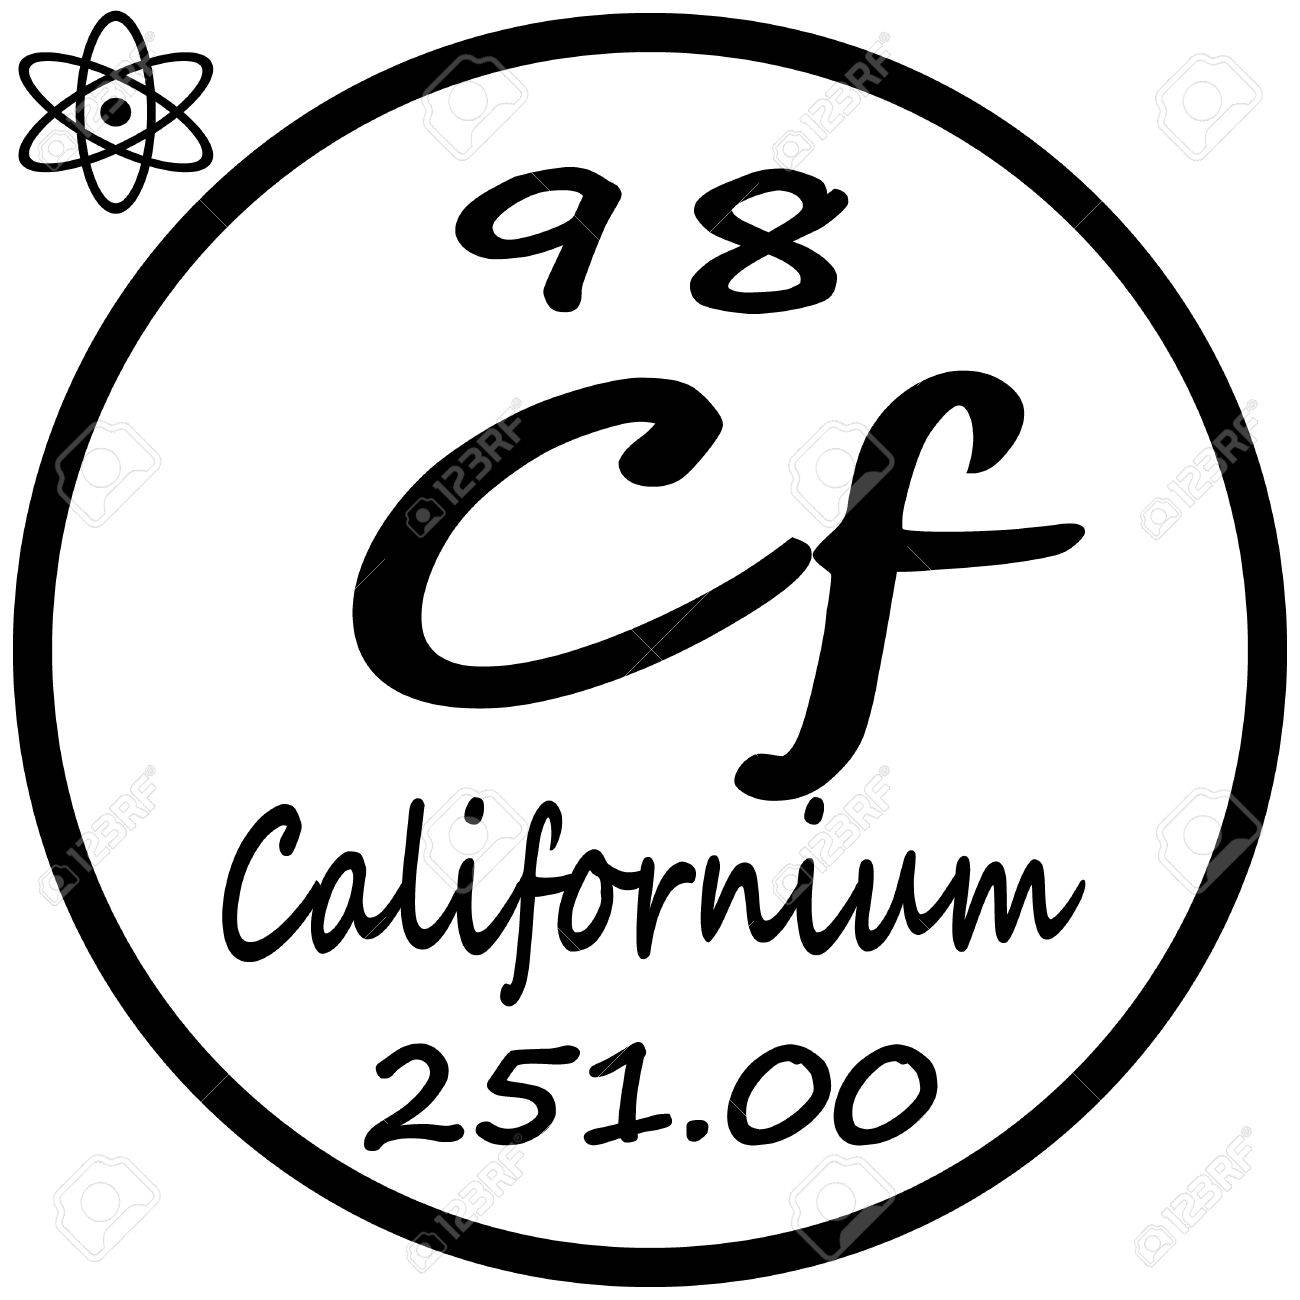 Periodic table of elements californium royalty free cliparts periodic table of elements californium stock vector 53482673 gamestrikefo Images